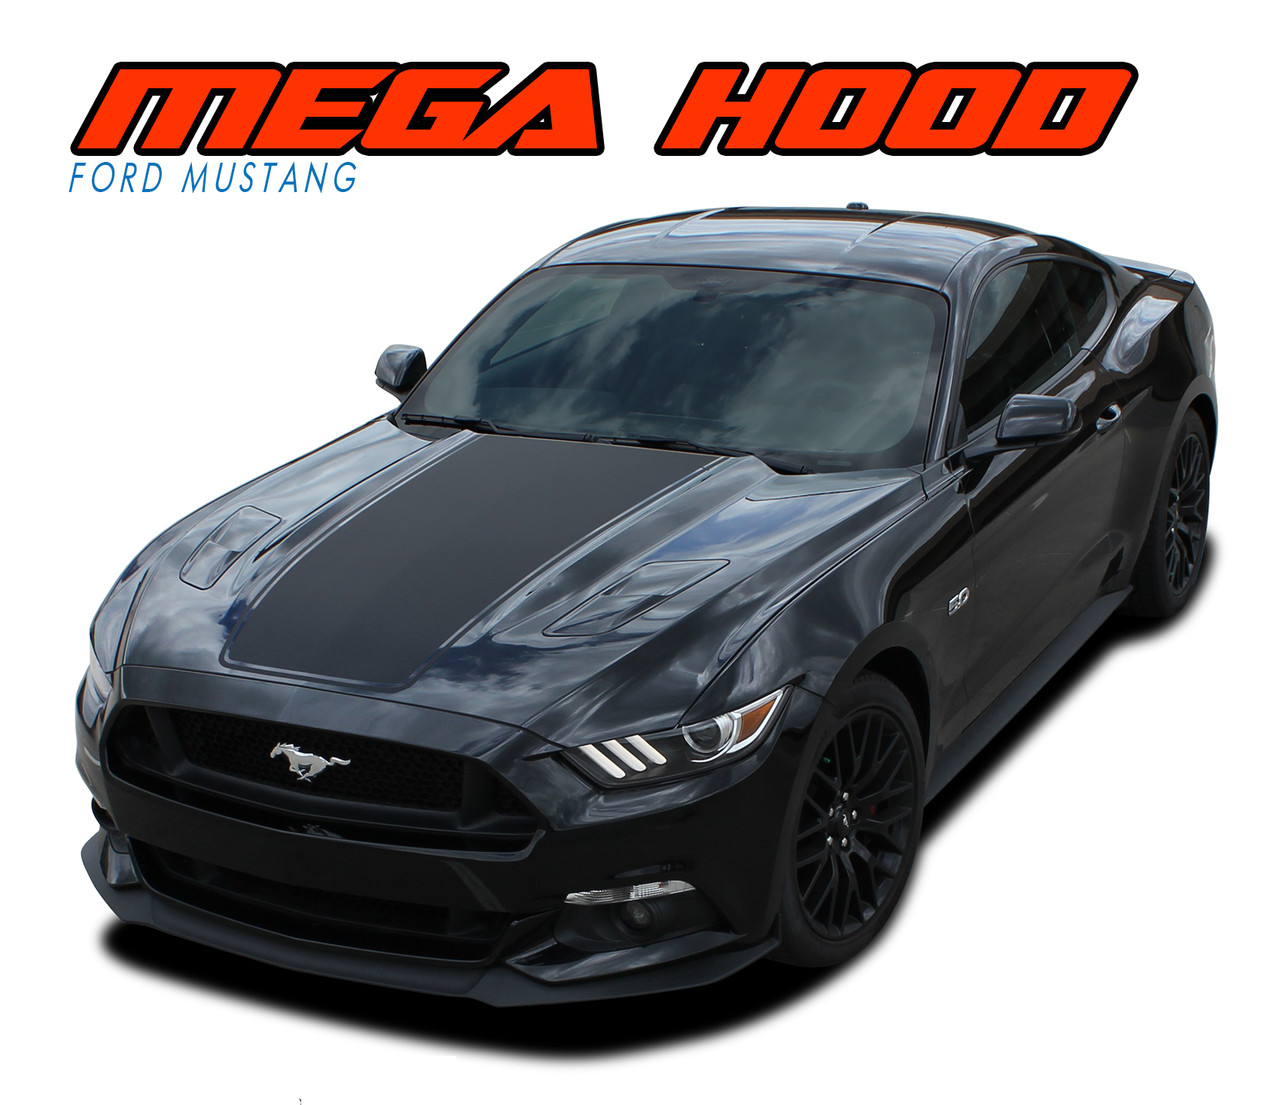 Mega hood 2015 2016 2017 ford mustang wide center hood racing rally stripes vinyl graphic decals kit vgp 3598